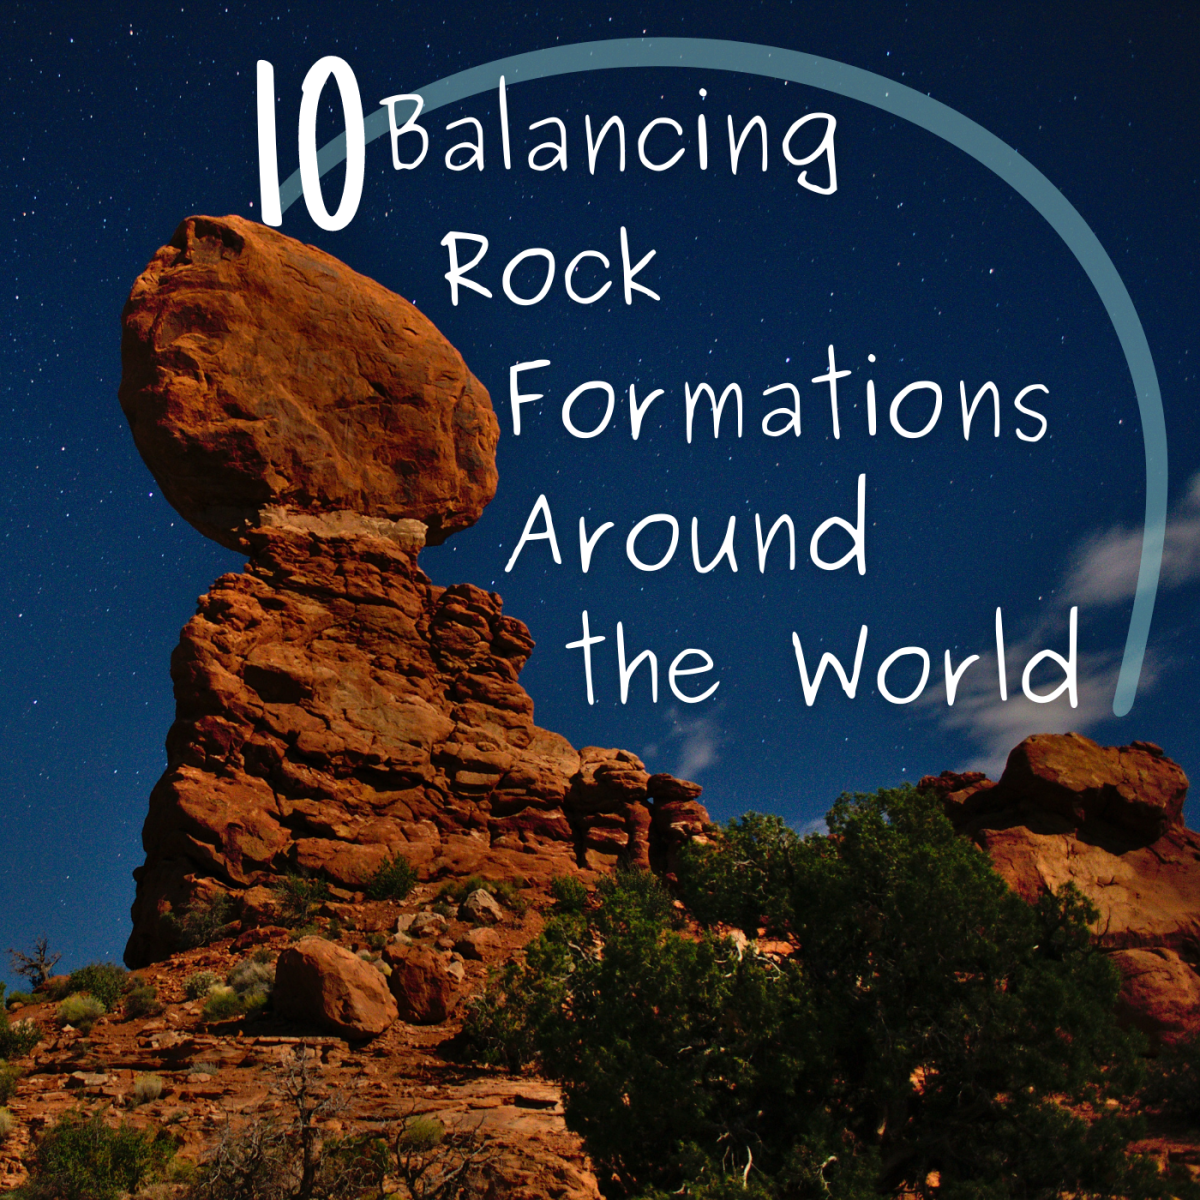 10 Amazingly Balanced Rock Formations to Visit Before They Disappear